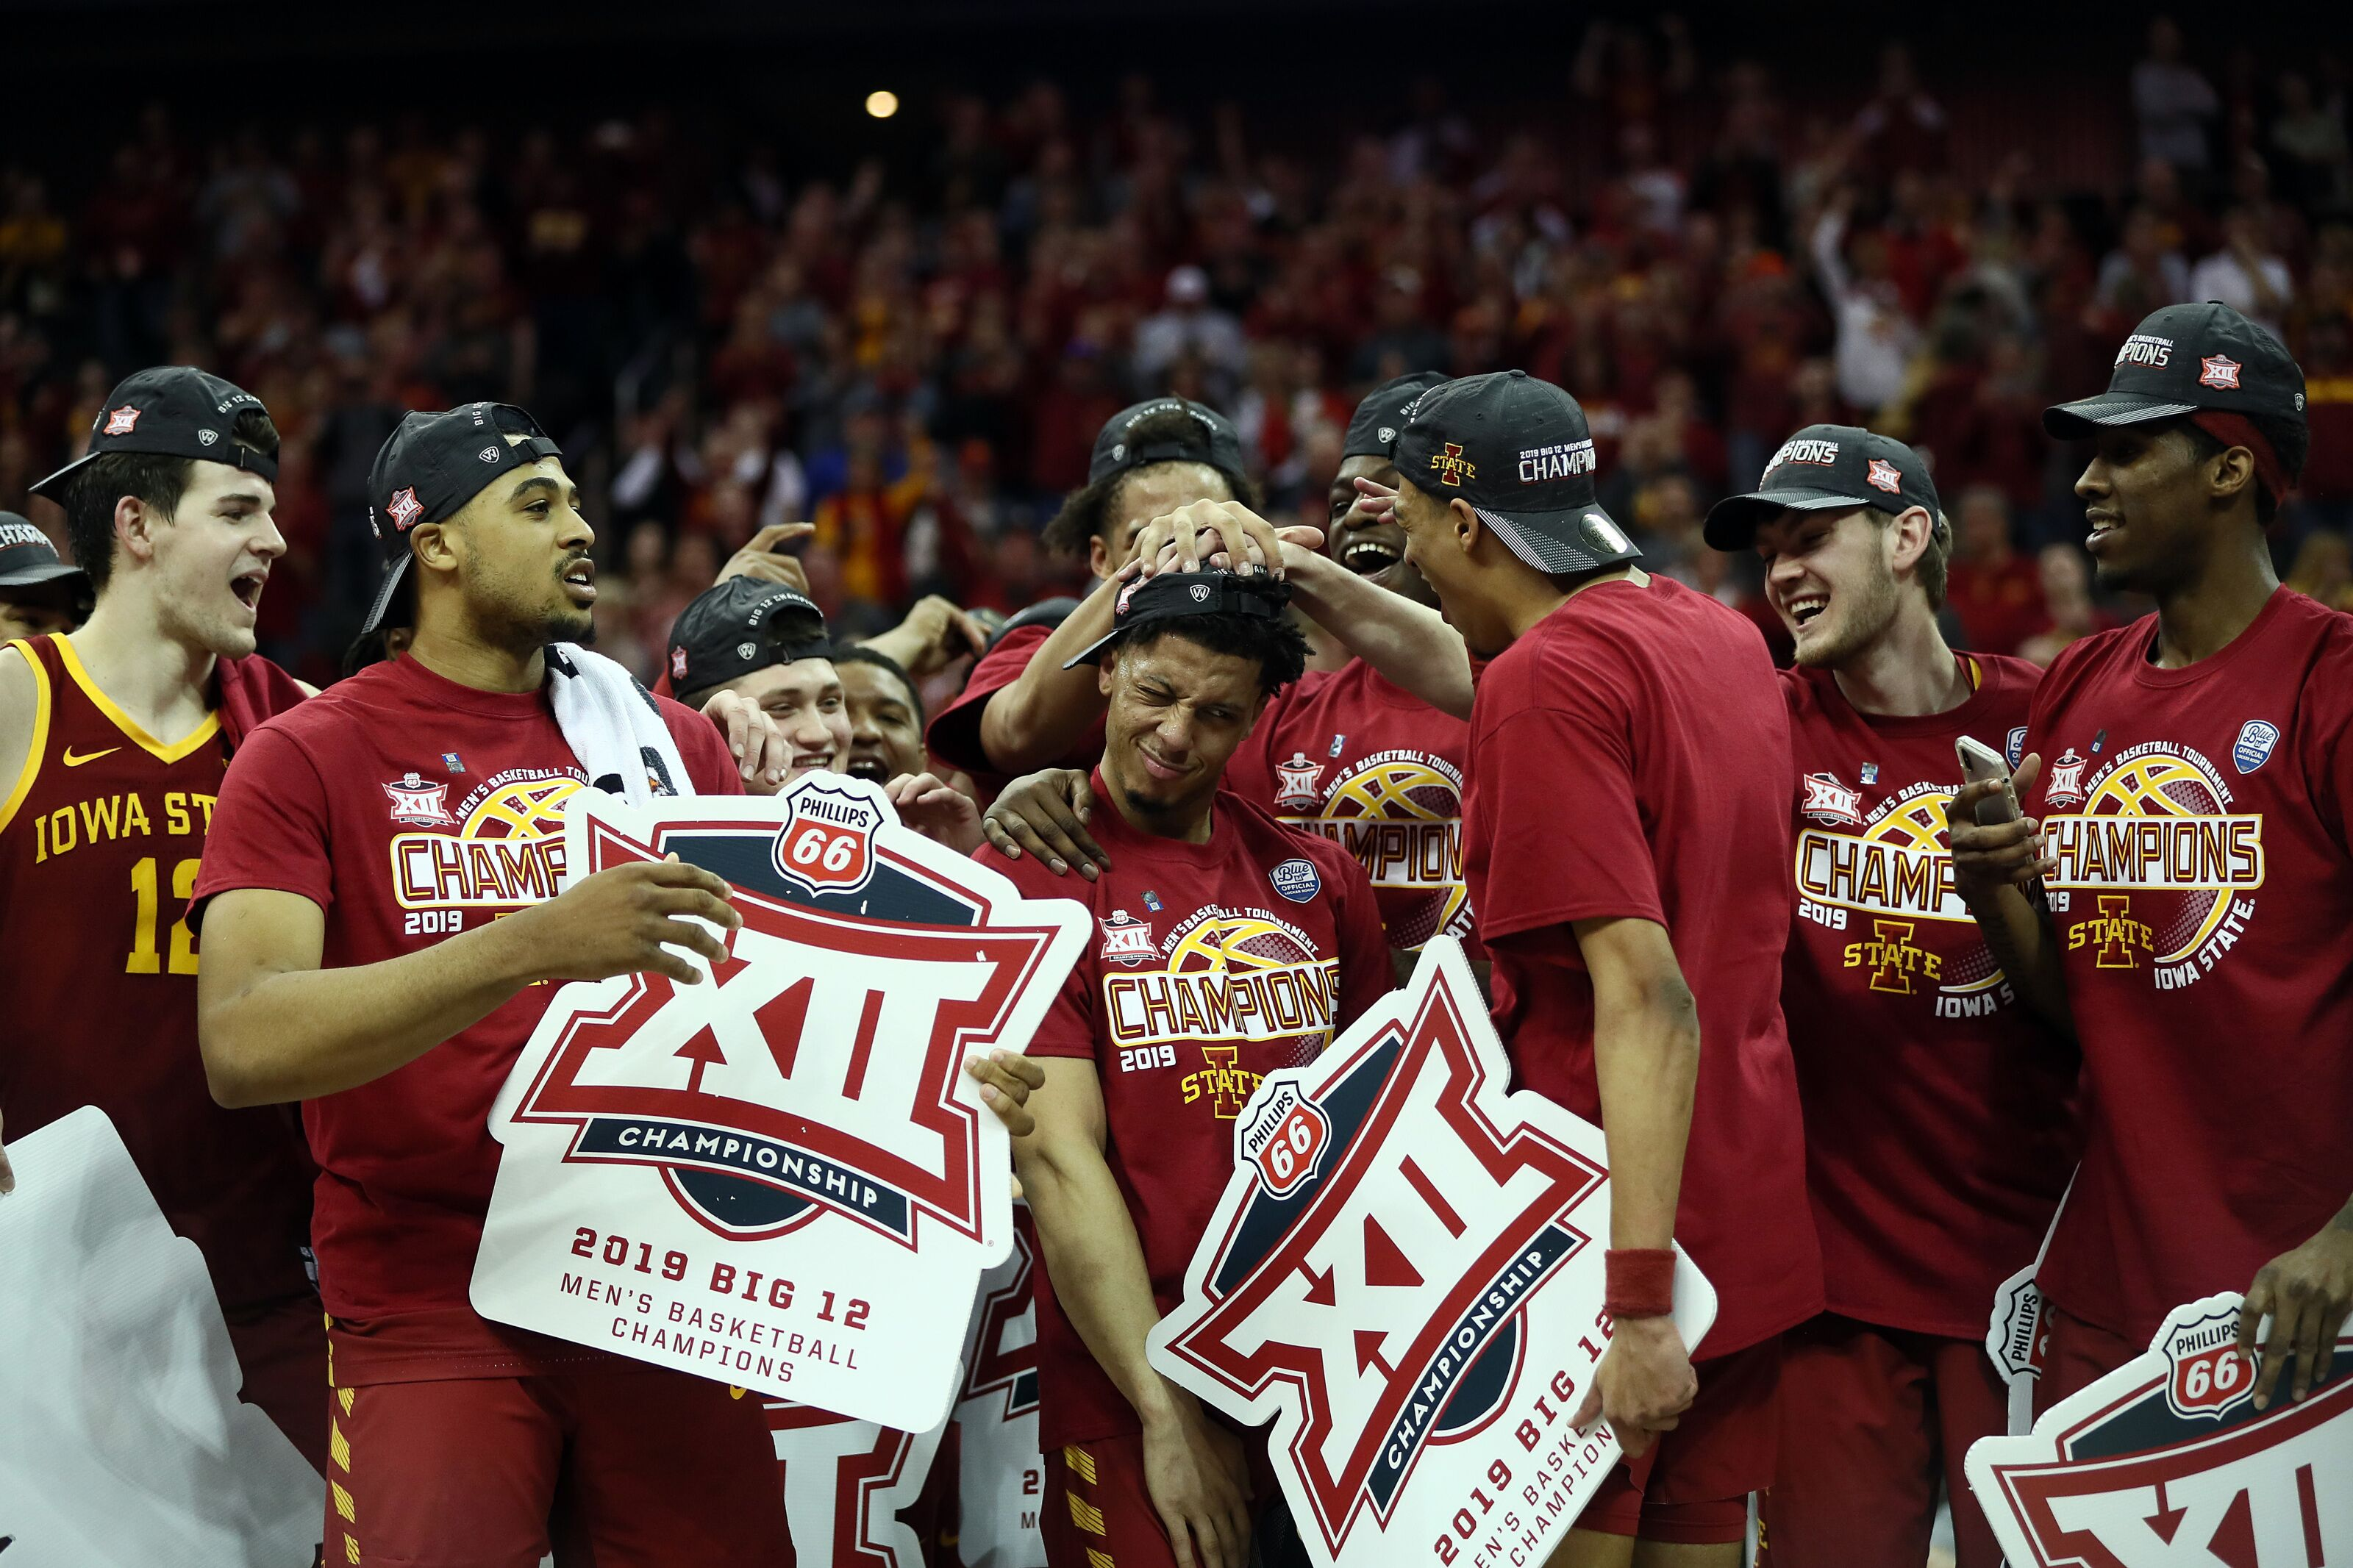 Big 12 Basketball: What is the current state of the conference entering 2019-20?